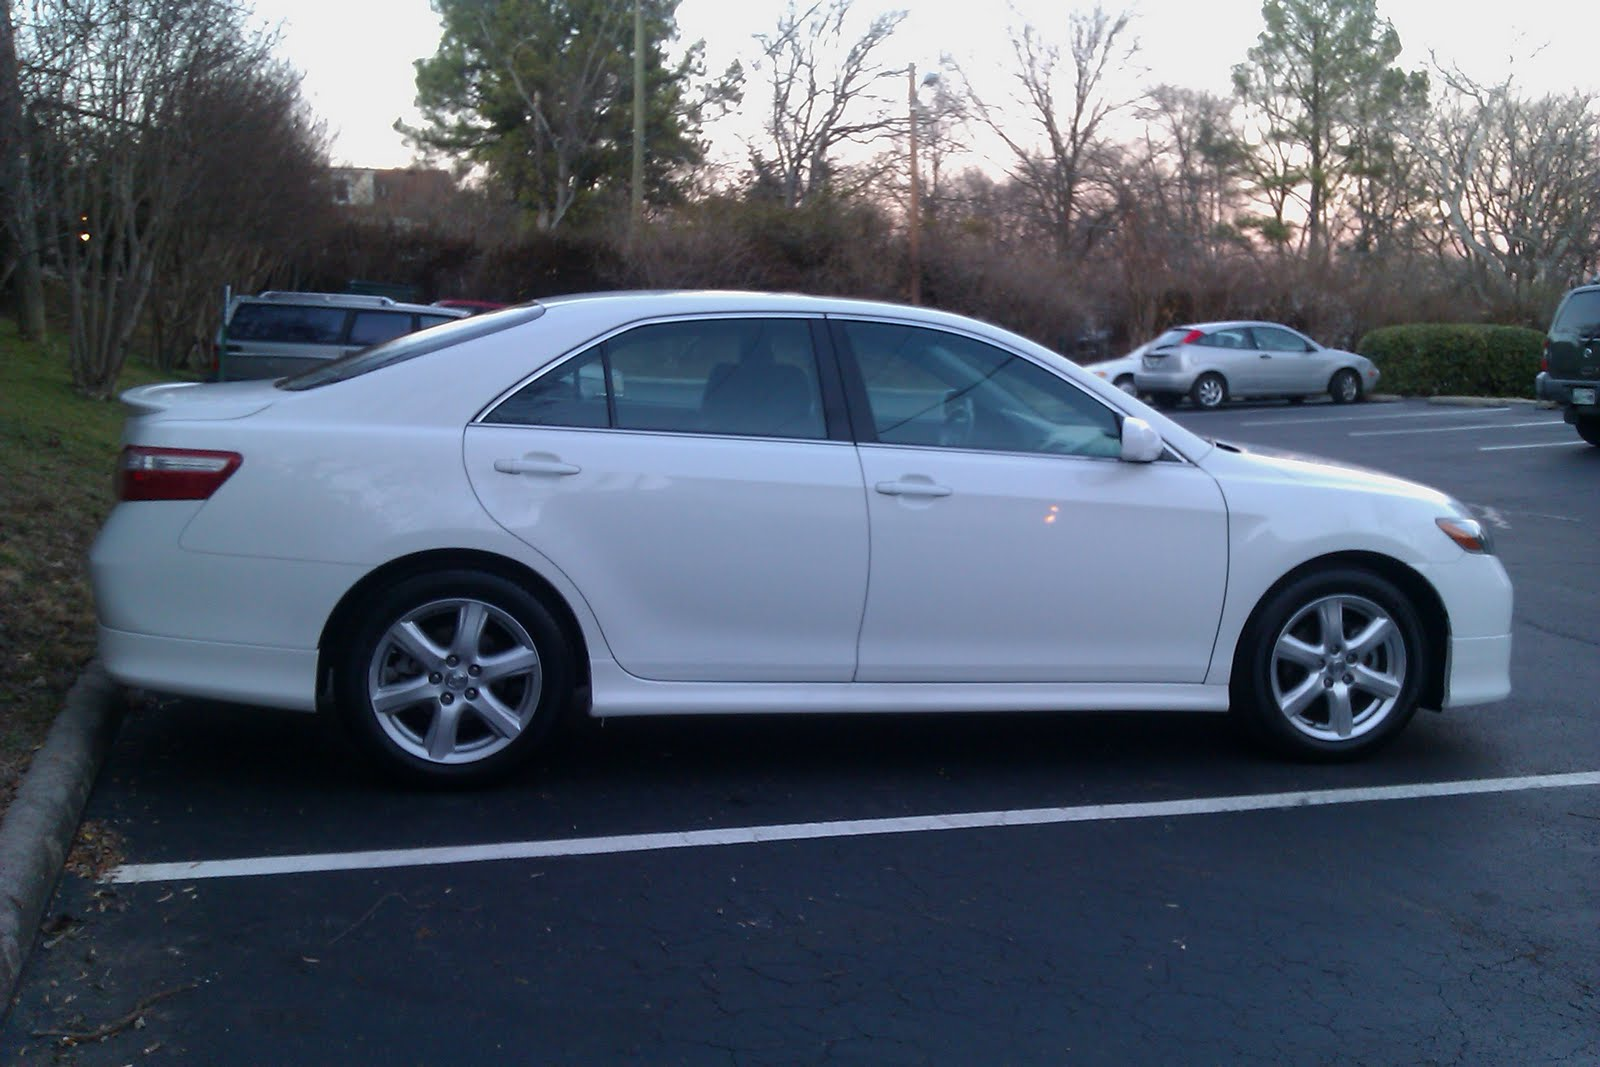 Picture of 2009 Toyota Camry SE, exterior | 1600 x 1067 jpeg 168kB